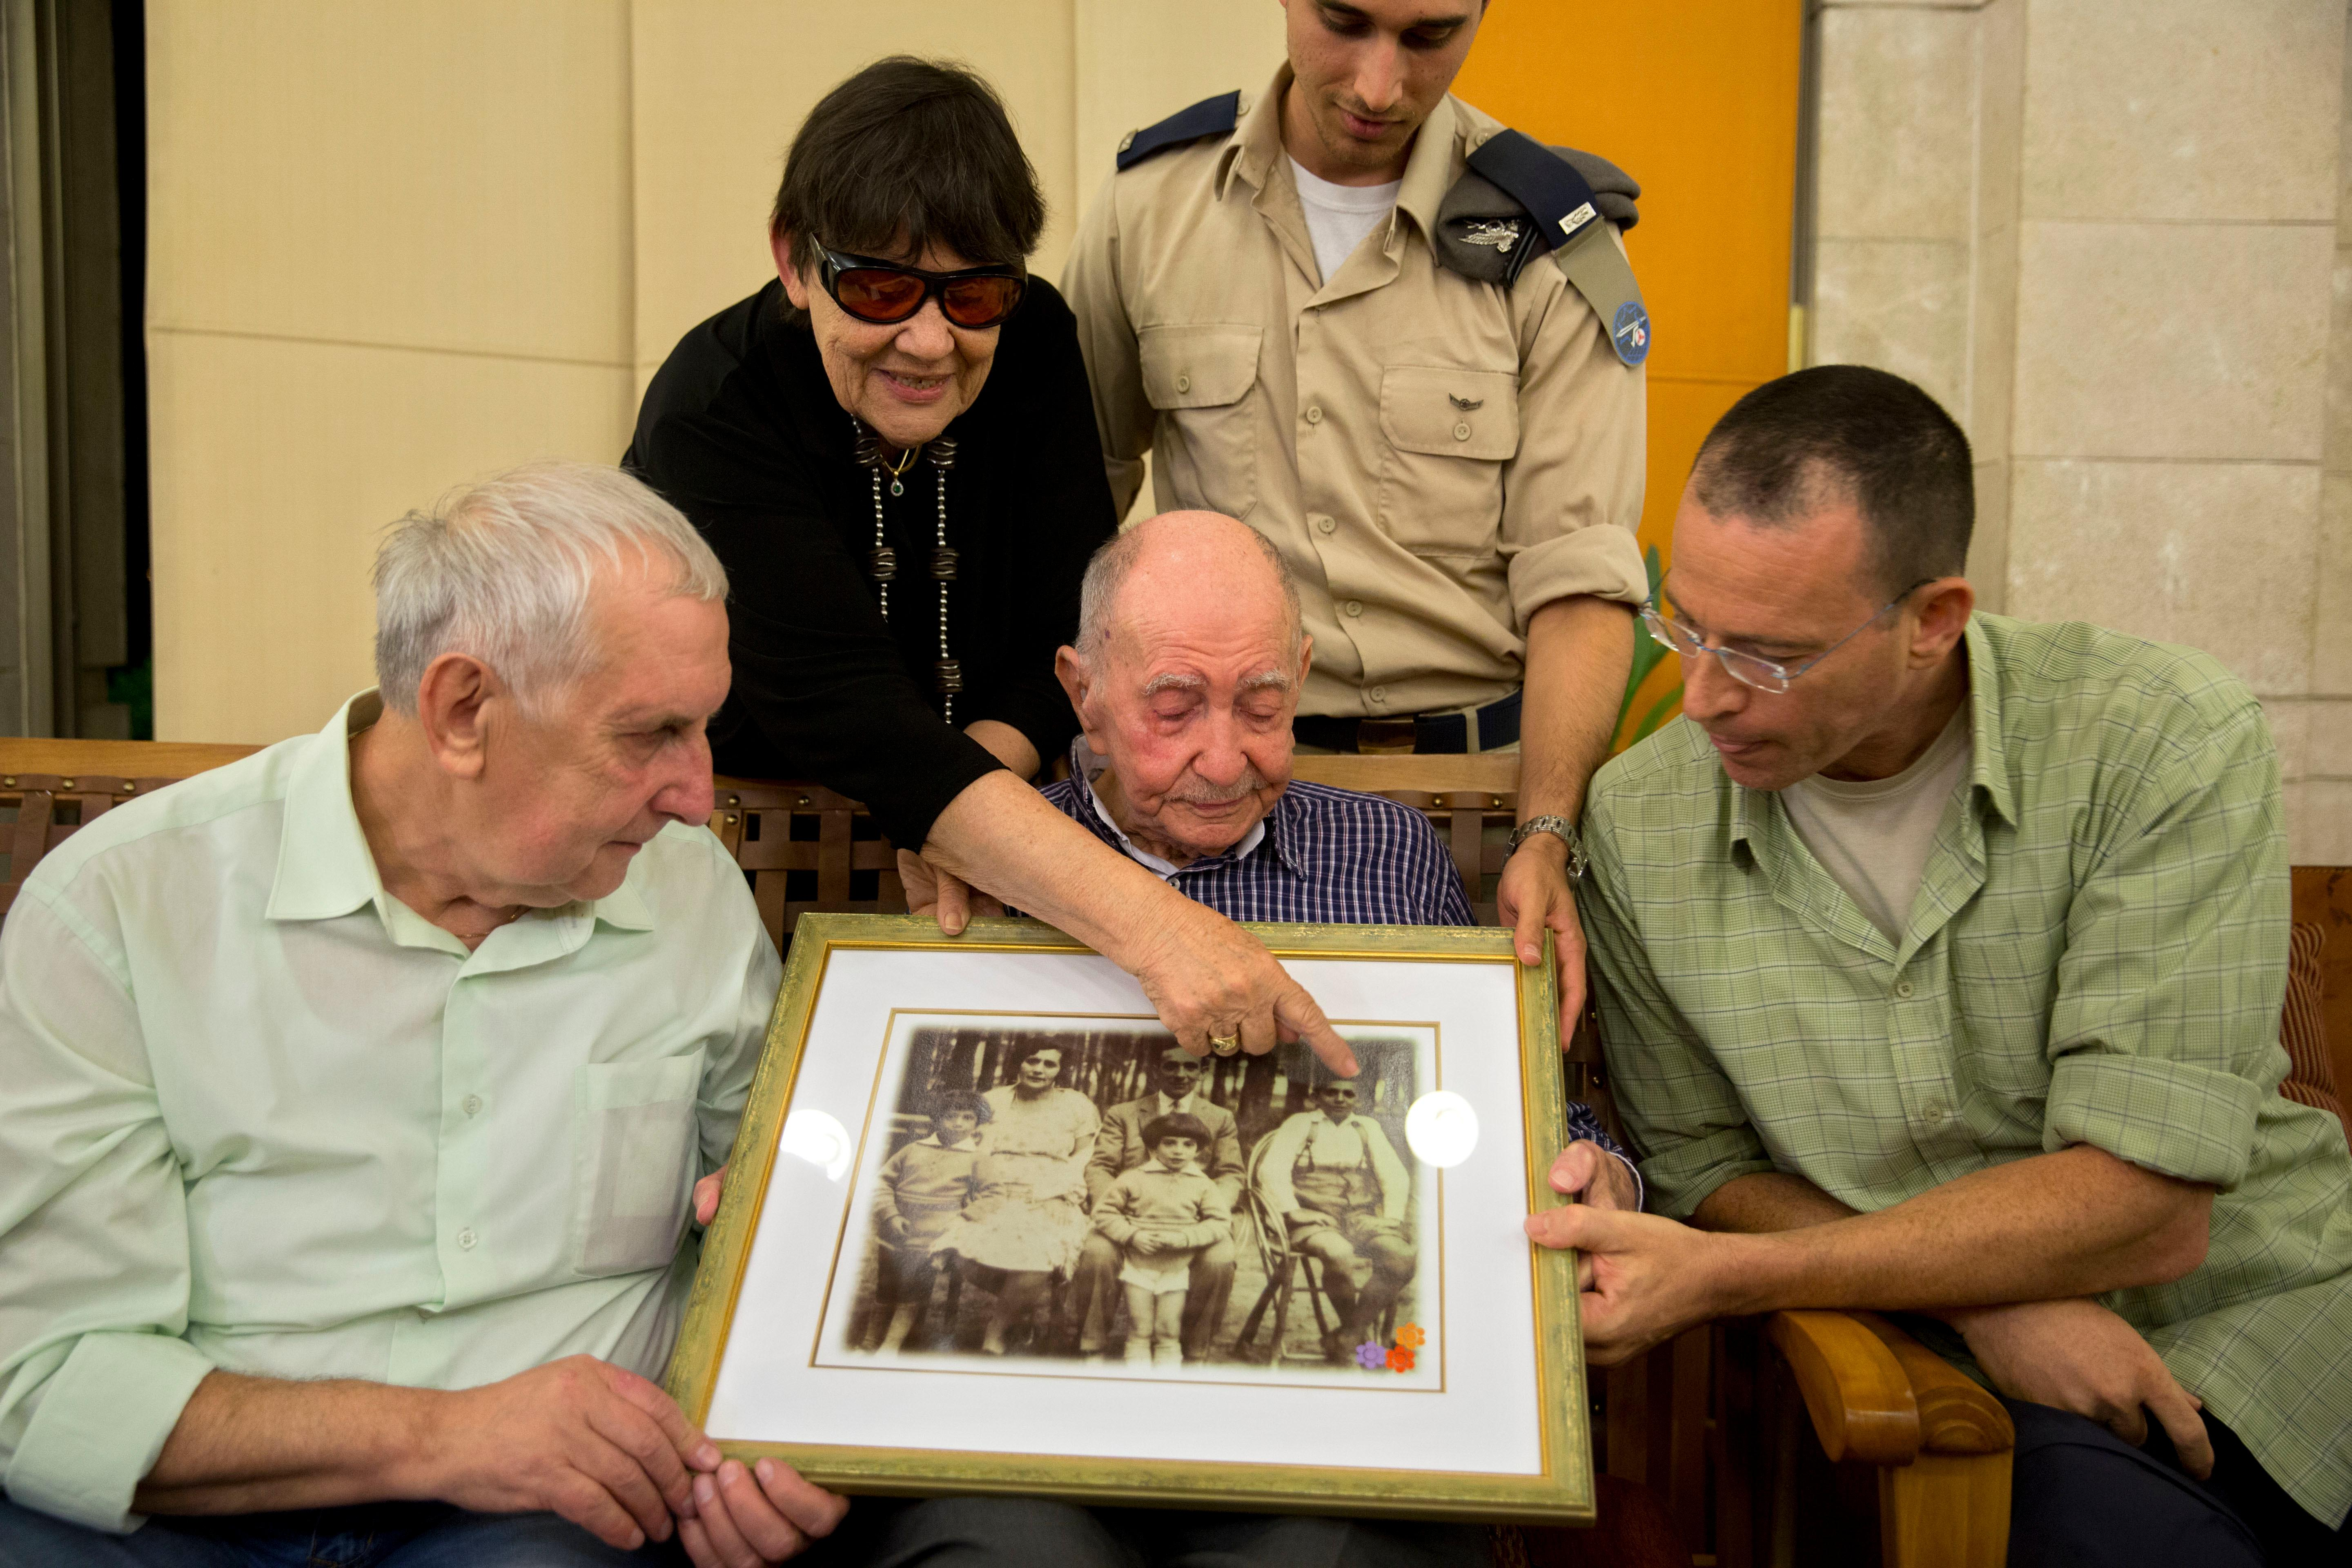 In this Thursday, Nov. 16, 2017 photo, Israeli Holocaust survivor Eliahu Pietruszka, center, looks at a picture with Alexandre Pietruszka and family in the central Israeli city of Kfar Saba. Pietruszka who fled Poland at the beginning of World War II and thought his entire family had perished learned that a younger brother had also survived, and his son, 66-year-old Alexandre, flew from Russia to see him. (AP Photo/Sebastian Scheiner)